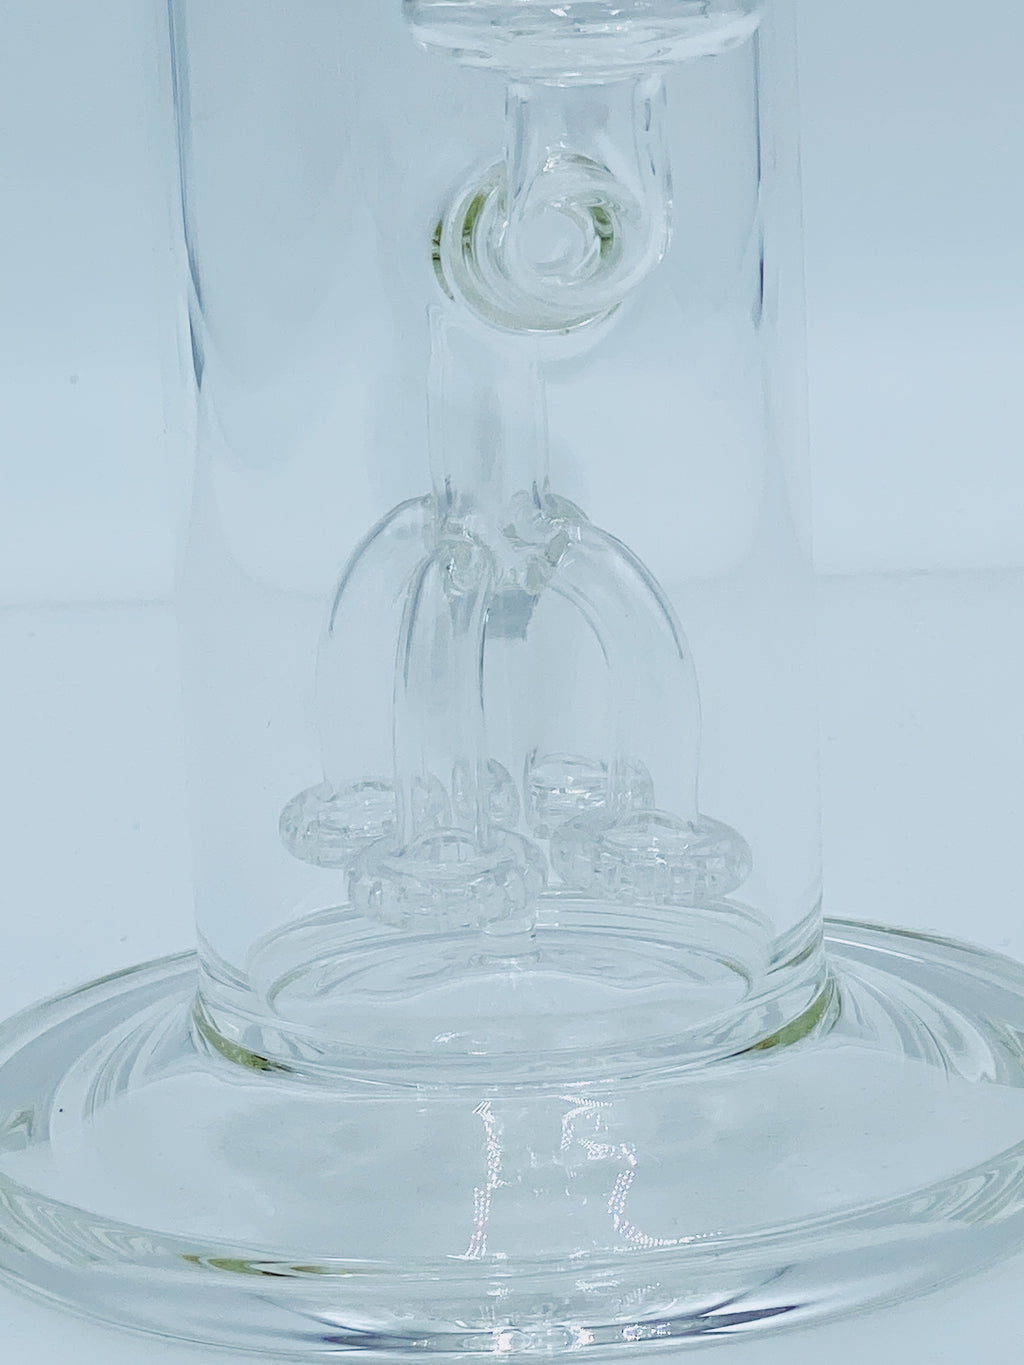 CHEECH GLASS QUAD SHOWER HEAD  BASE - Smoke Country - Land of the artistic glass blown bongs